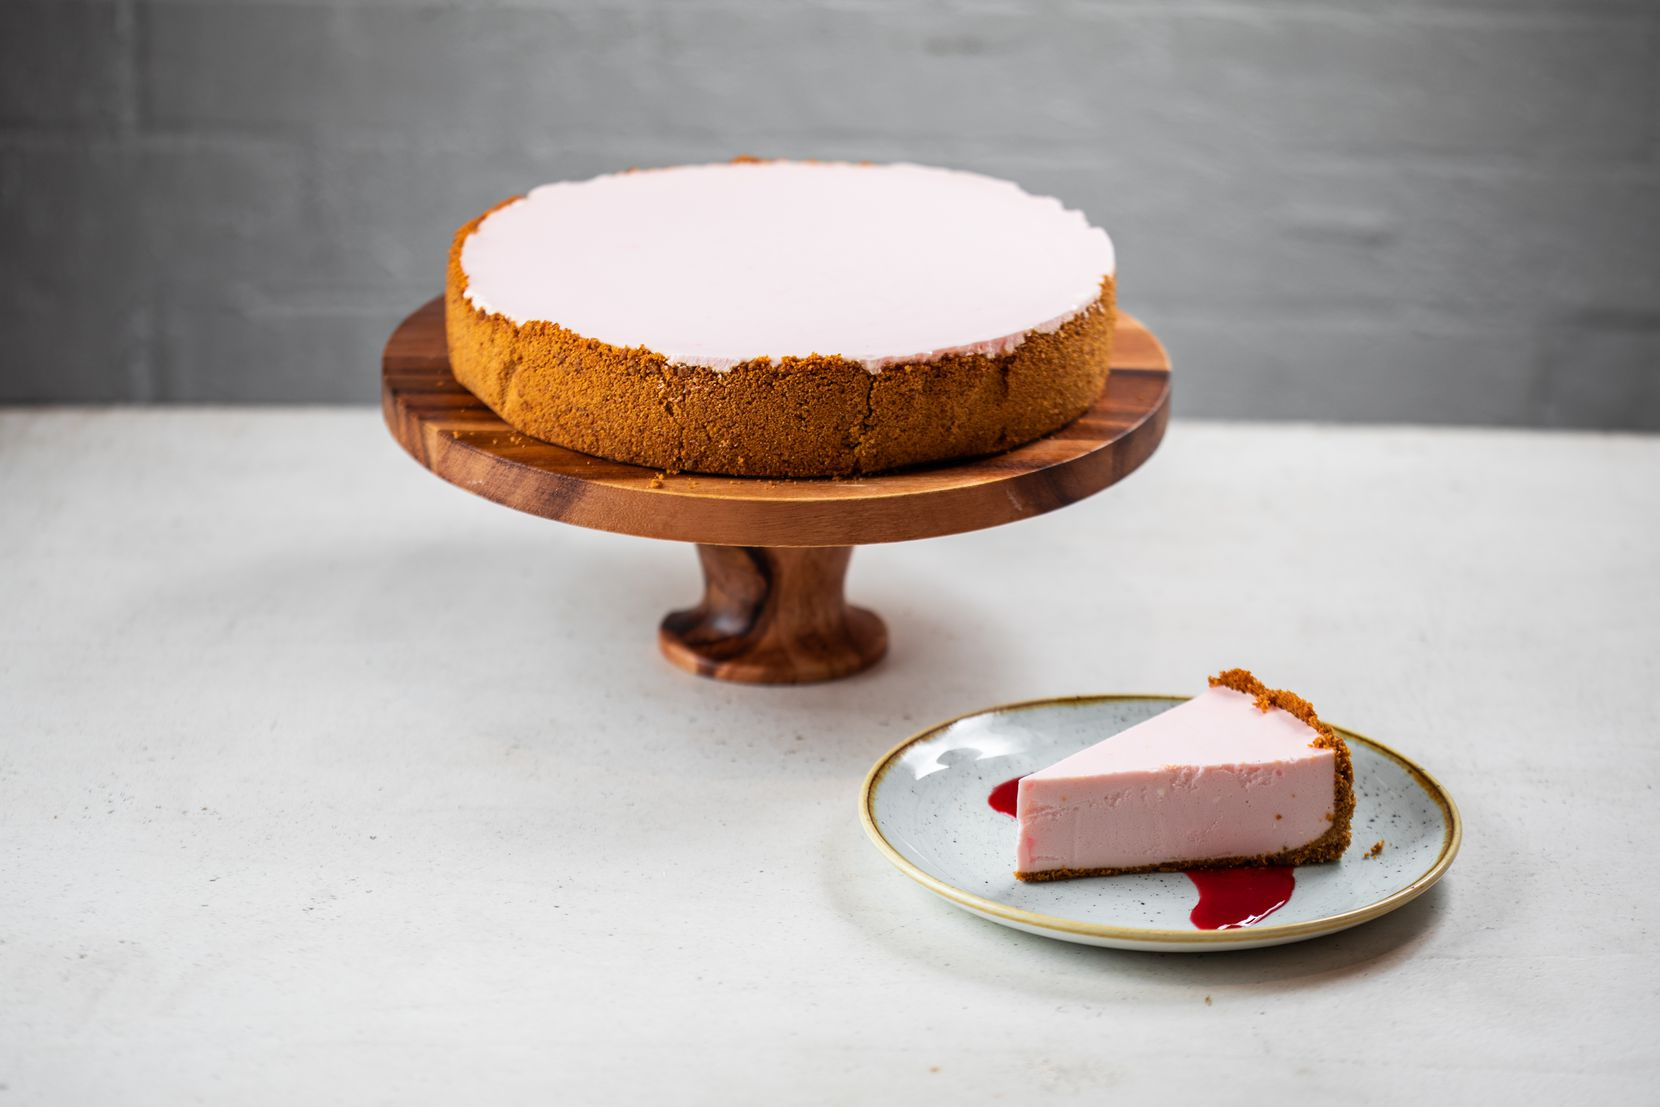 Sixty Vines offers a Rose  Cheesecake made with Vine Huggers Rose  and a Graham Cracker Crust.